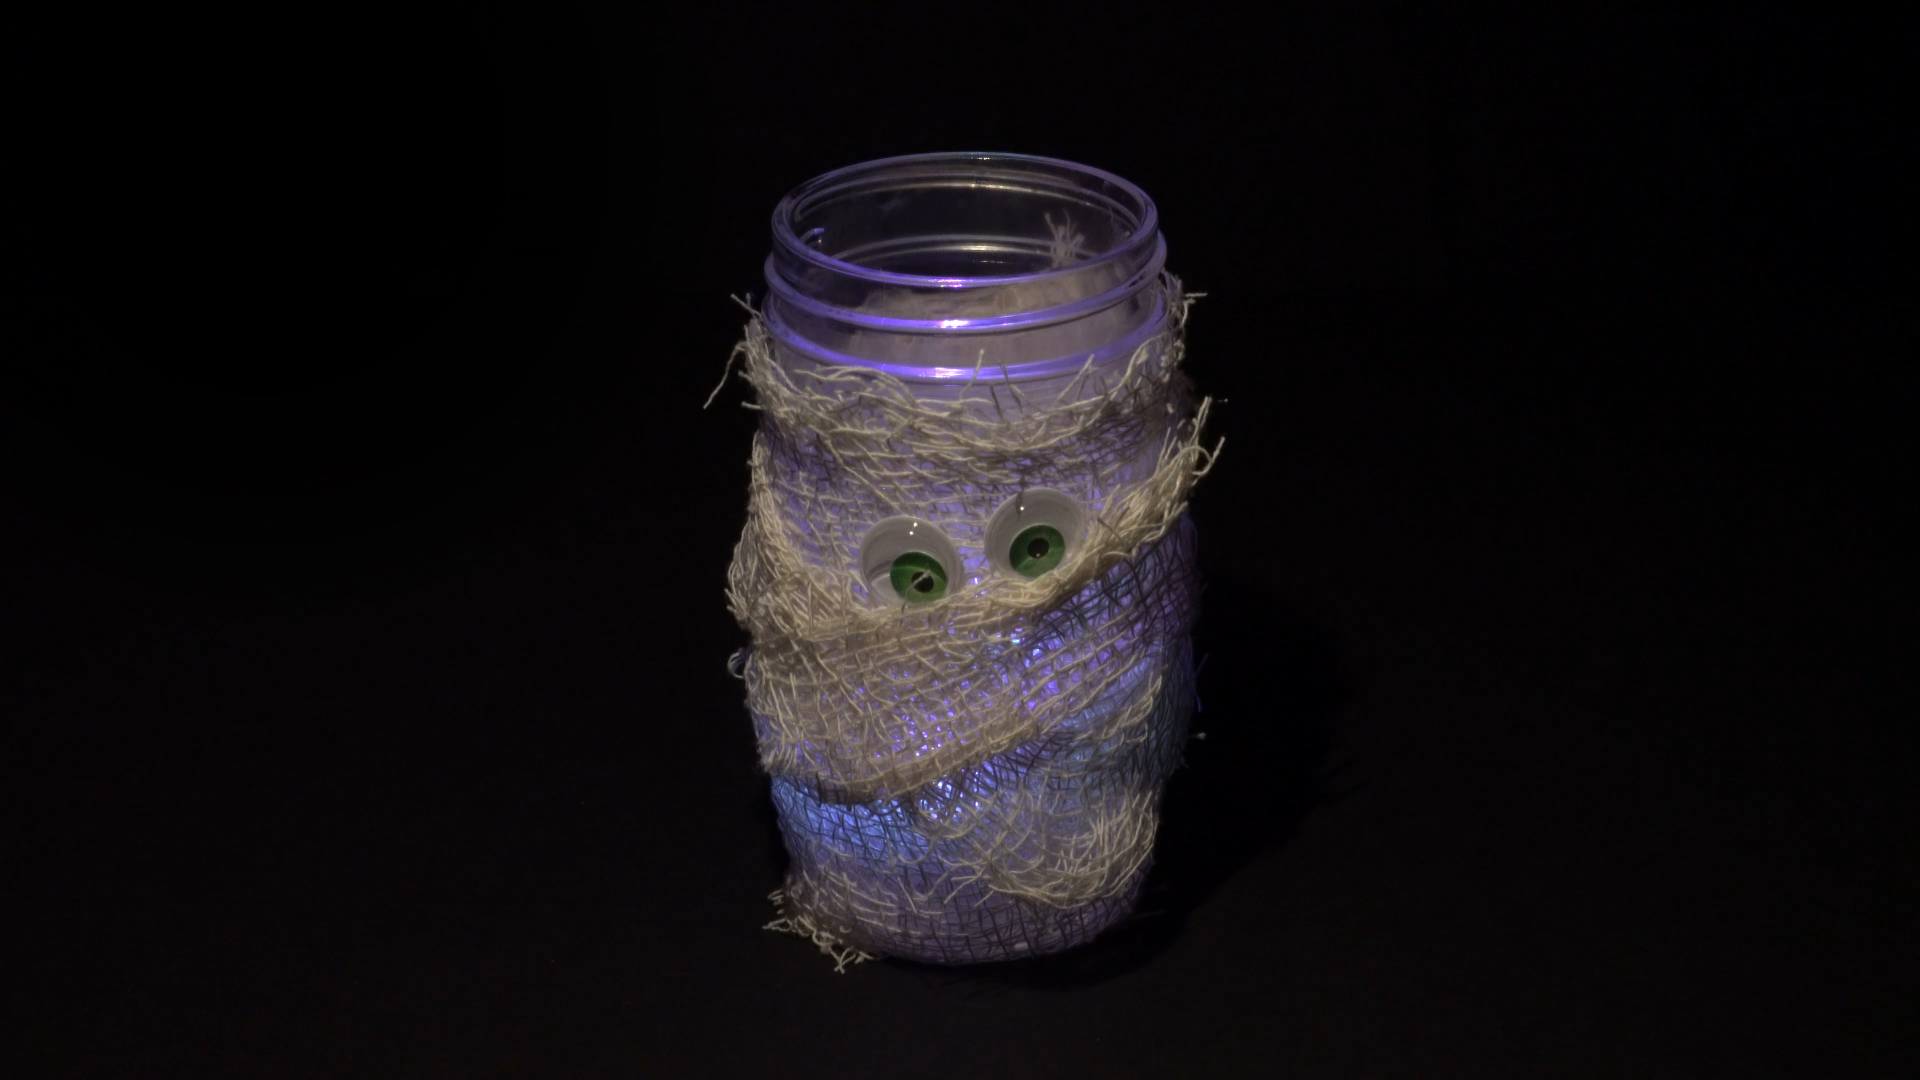 Halloween crafts with color-changing led tea lights - mummy